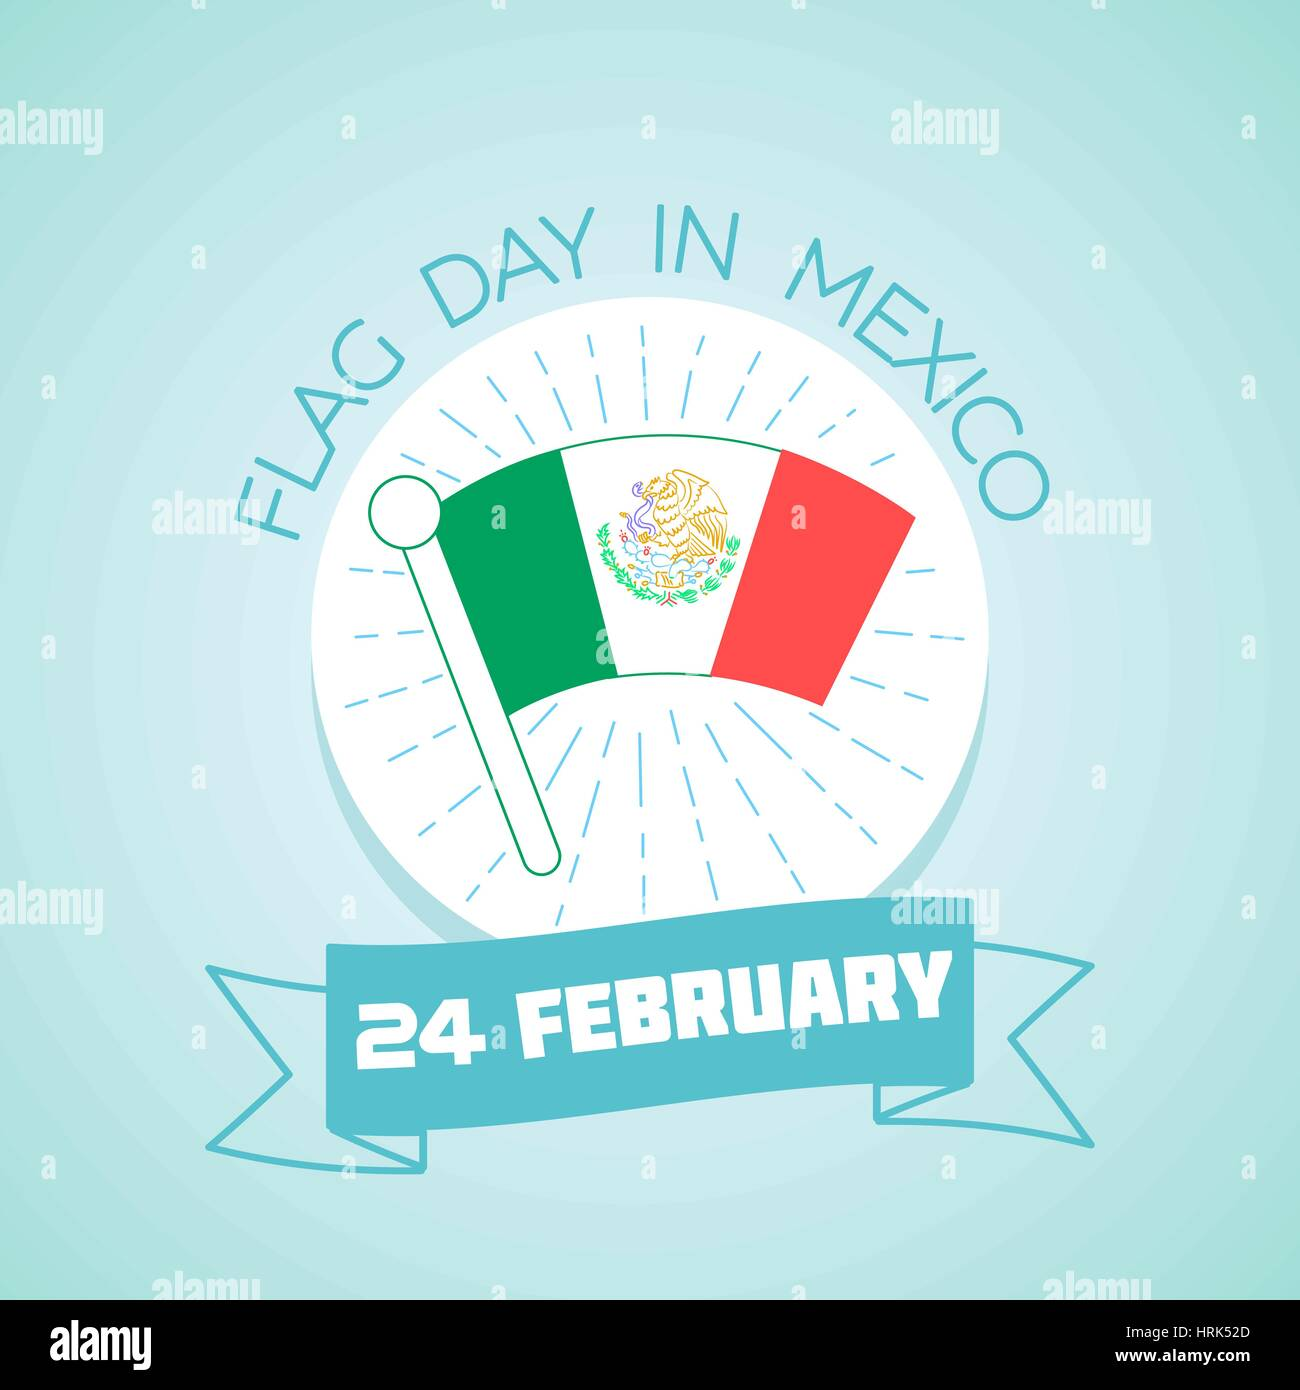 February24 Greeting Card Holiday Flag Day In Mexico Icon In The